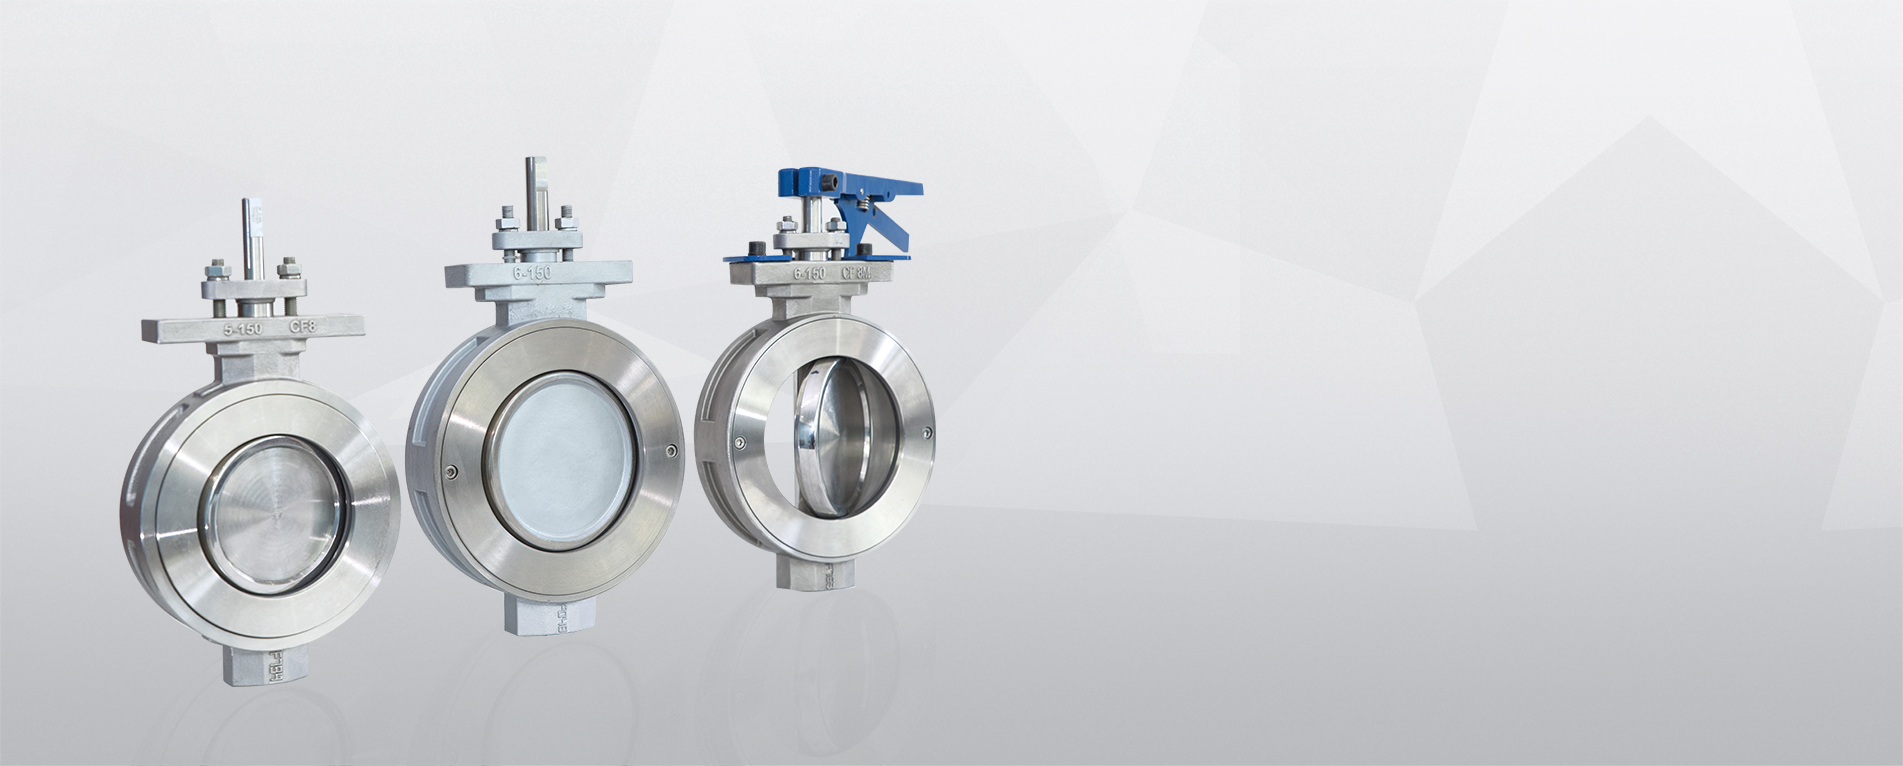 EXTREMELY DURABLE HIGH PERFORMANCE BUTTERFLY VALVE